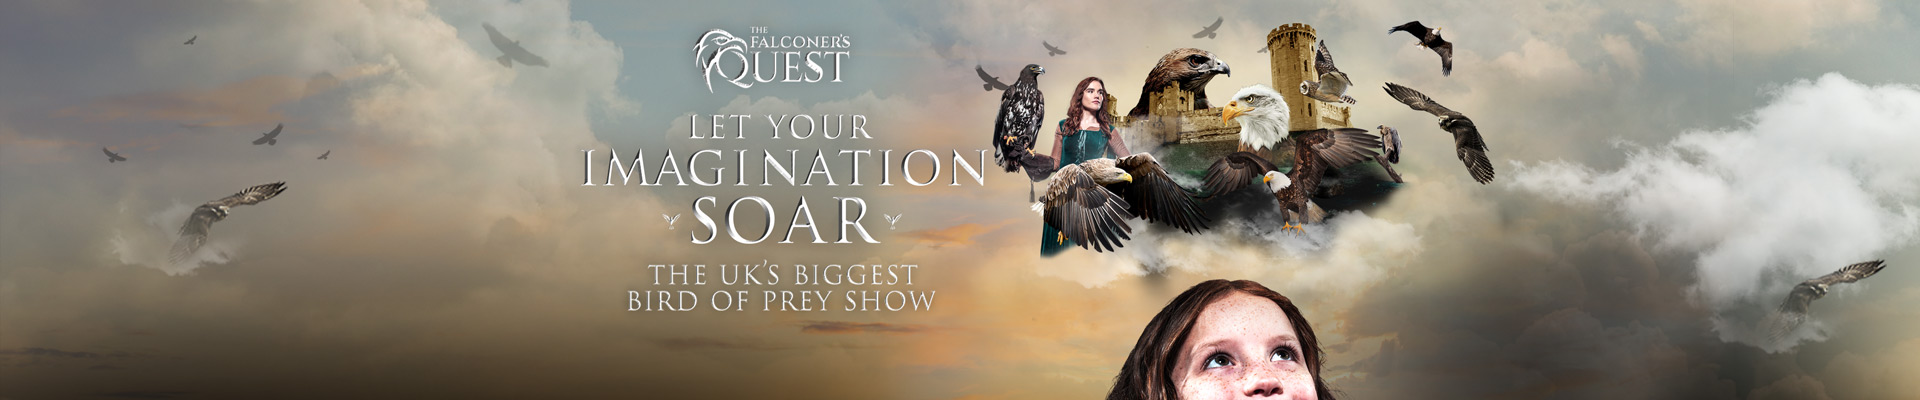 FALCONER'S QUEST AT WARWICK CASTLE